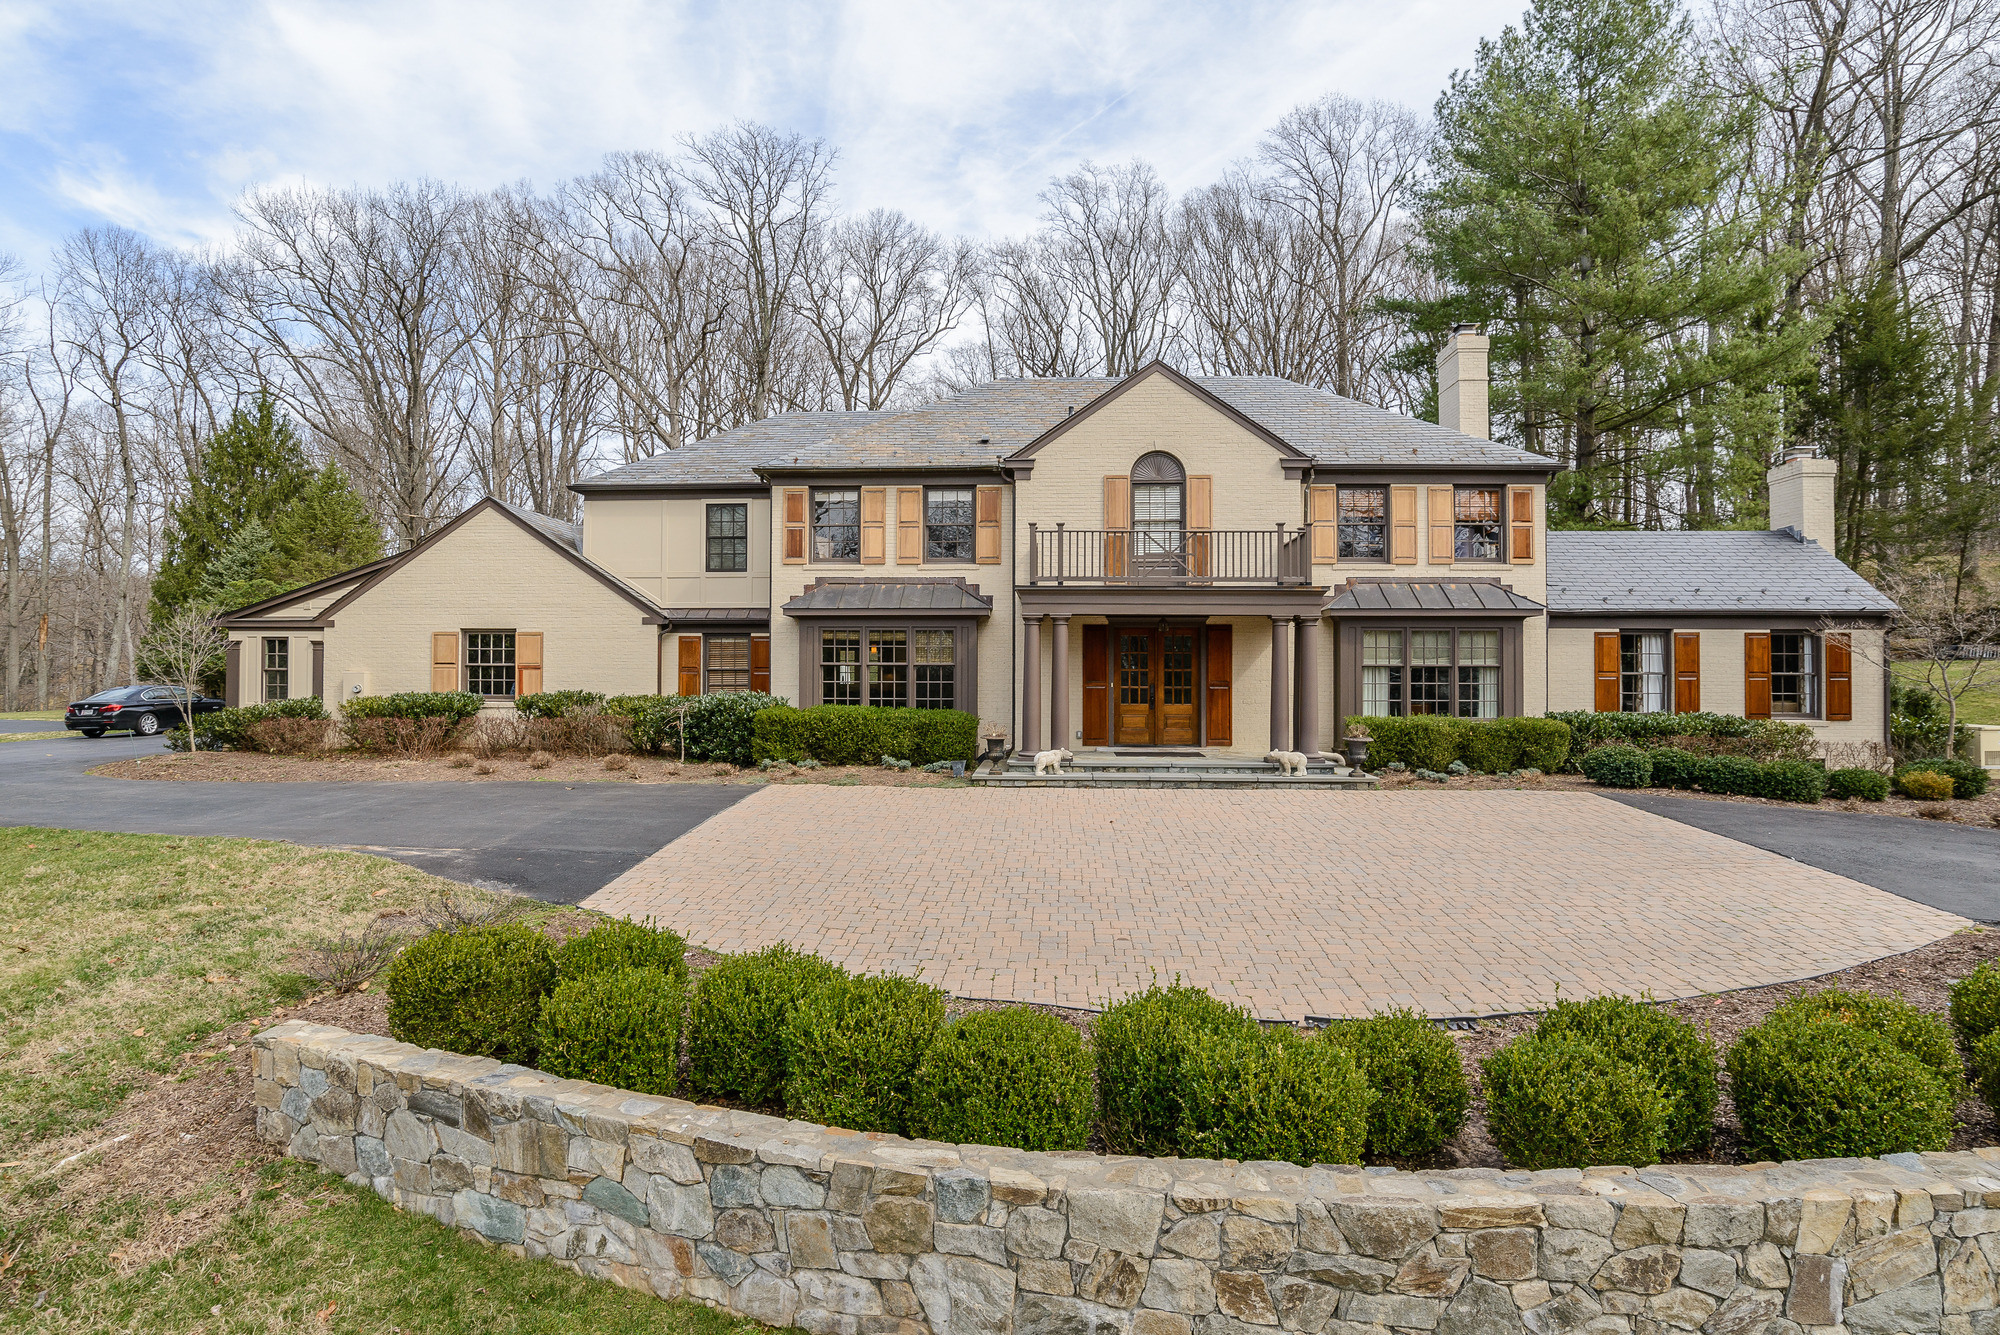 Exterior: 8919 BEL AIR PL, POTOMAC, MD 20854